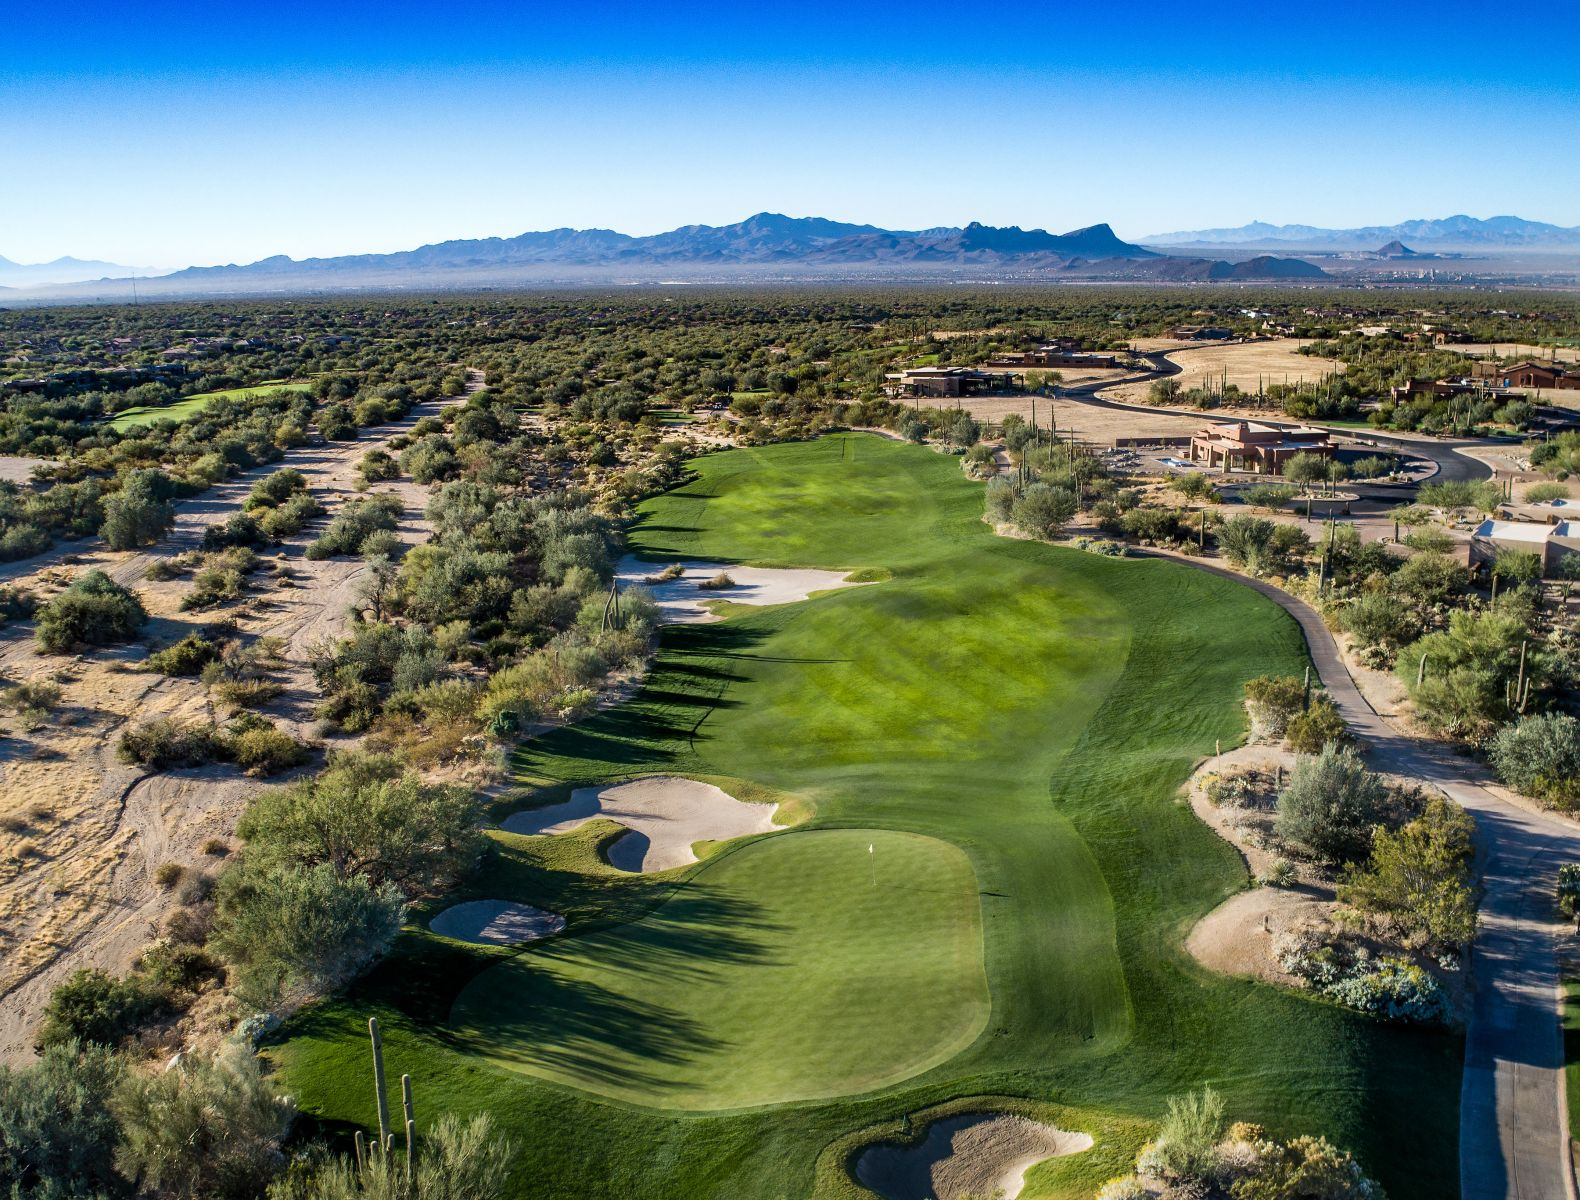 Aerial view of hole 5 on the Wild Burro course